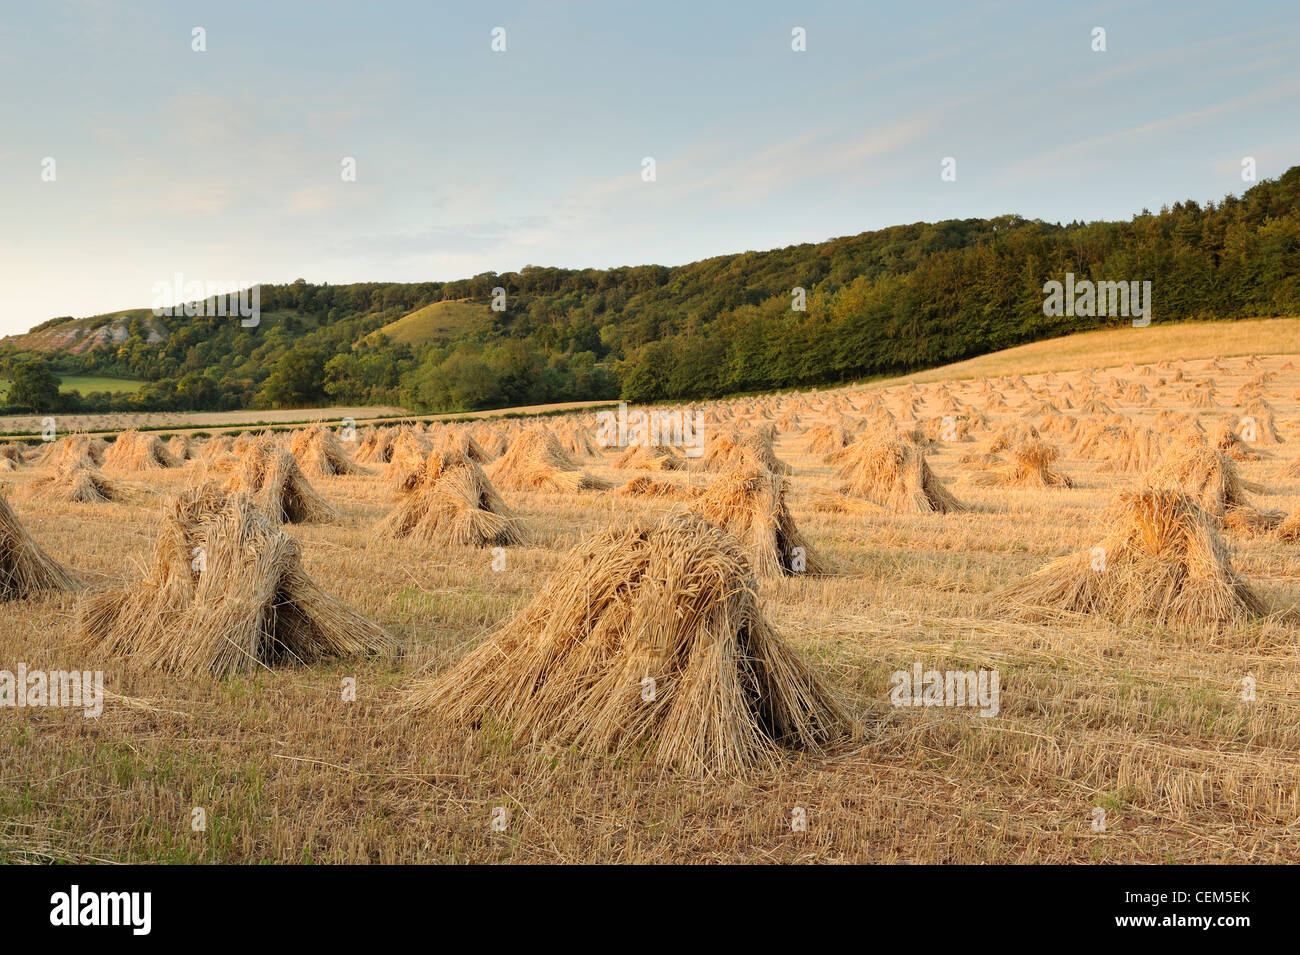 Traditional stacks of Wheat, known as stitches, in a field in Somerset, UK. - Stock Image